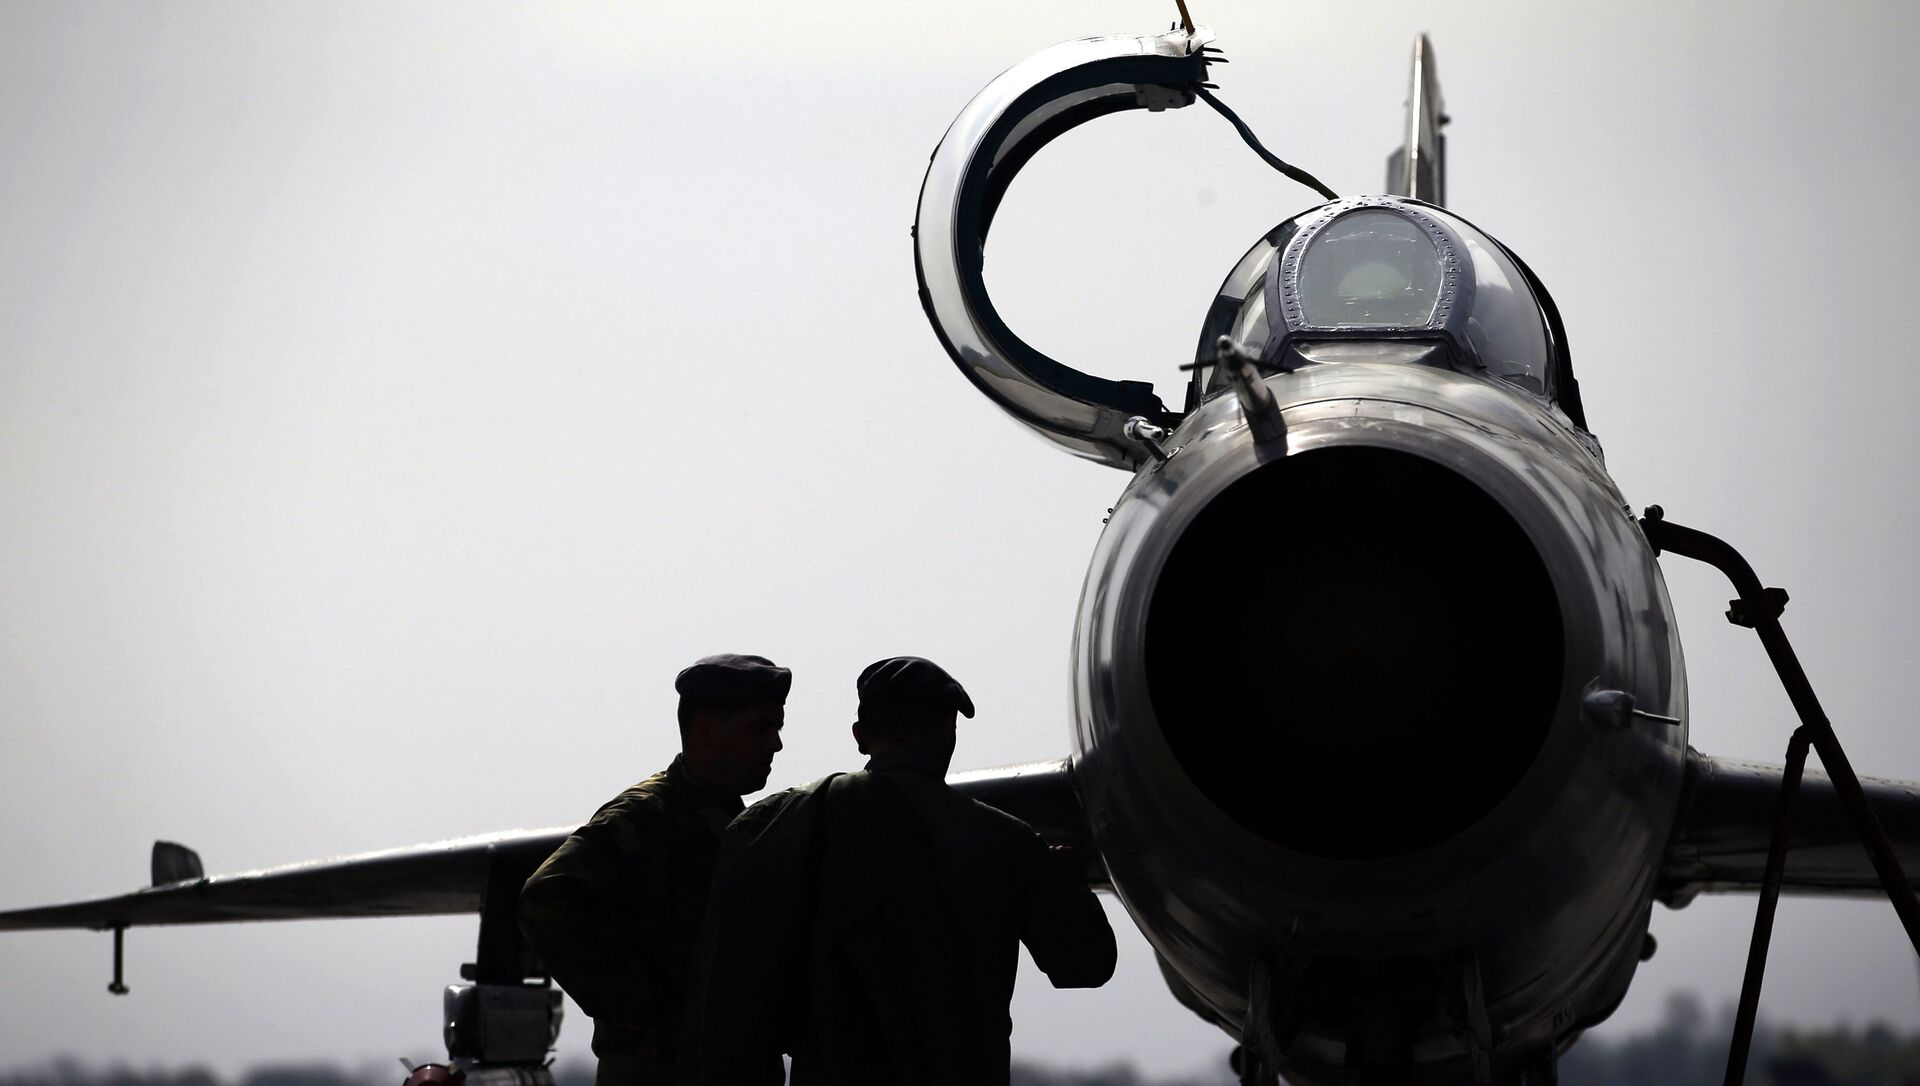 In this Wednesday, April 6, 2016 photo, ground crew prepares a Mig 21 fighter jet for a flight at the military airport Batajnica, near Belgrade, Serbia - Sputnik International, 1920, 29.05.2021